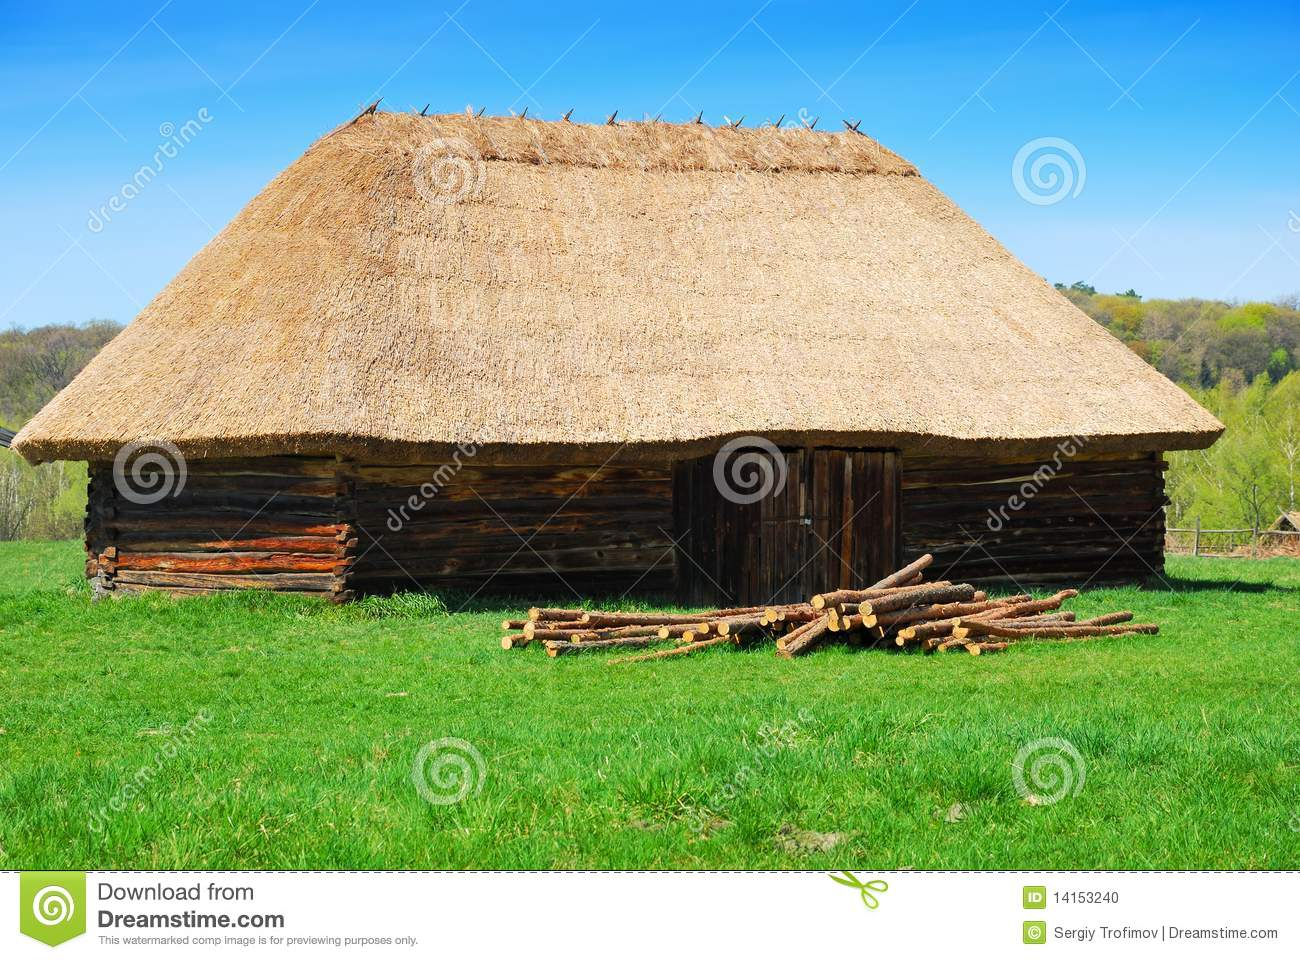 straw roof house